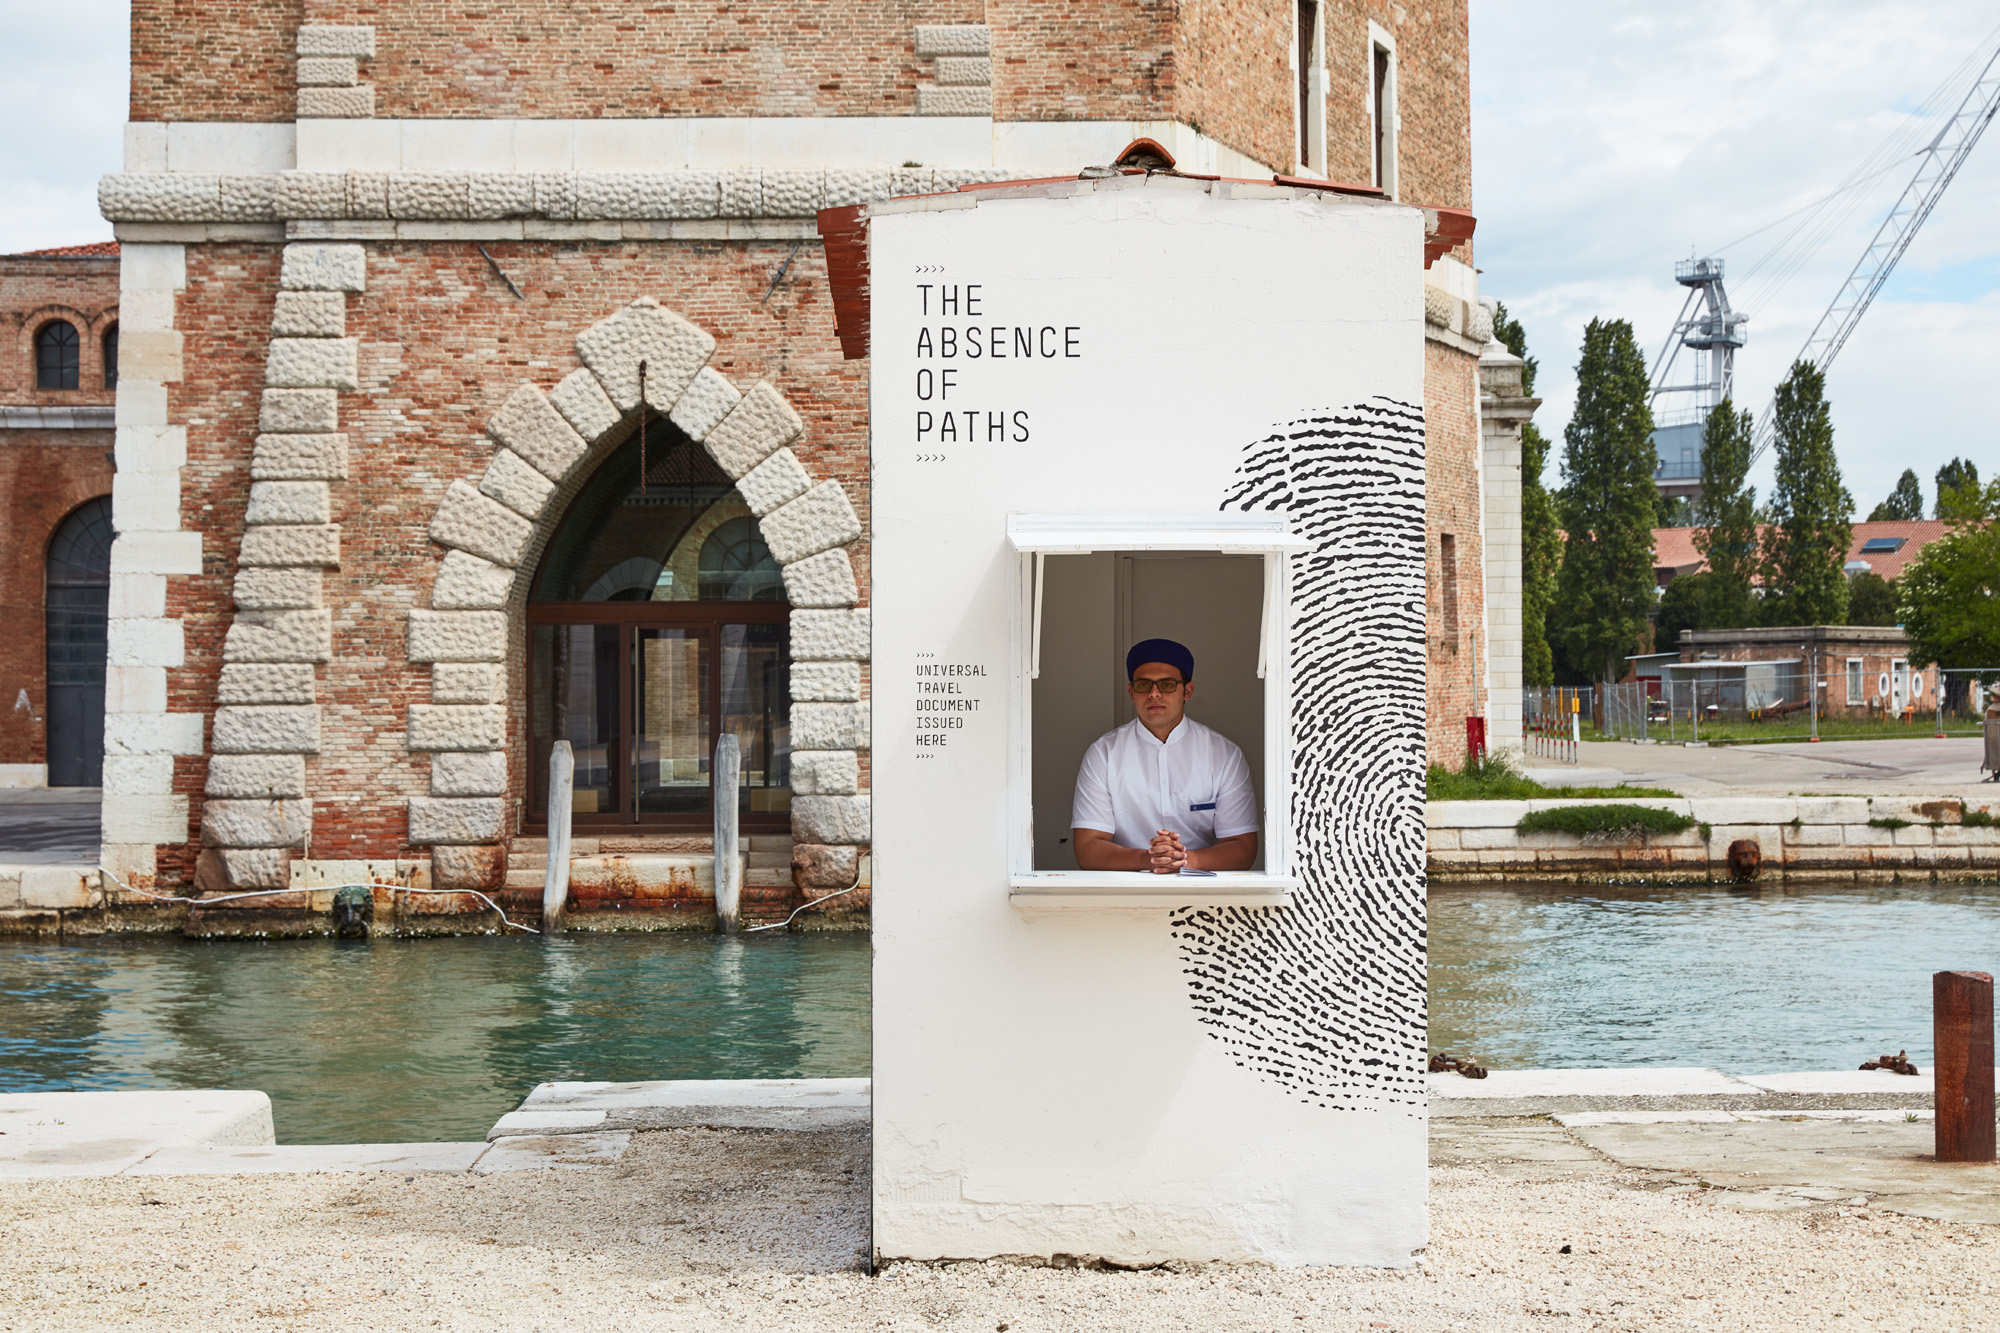 Installation view of The Tunisian Pavilion, The Absence of Paths at La Biennale di Venezia, photograph:Luke Walker